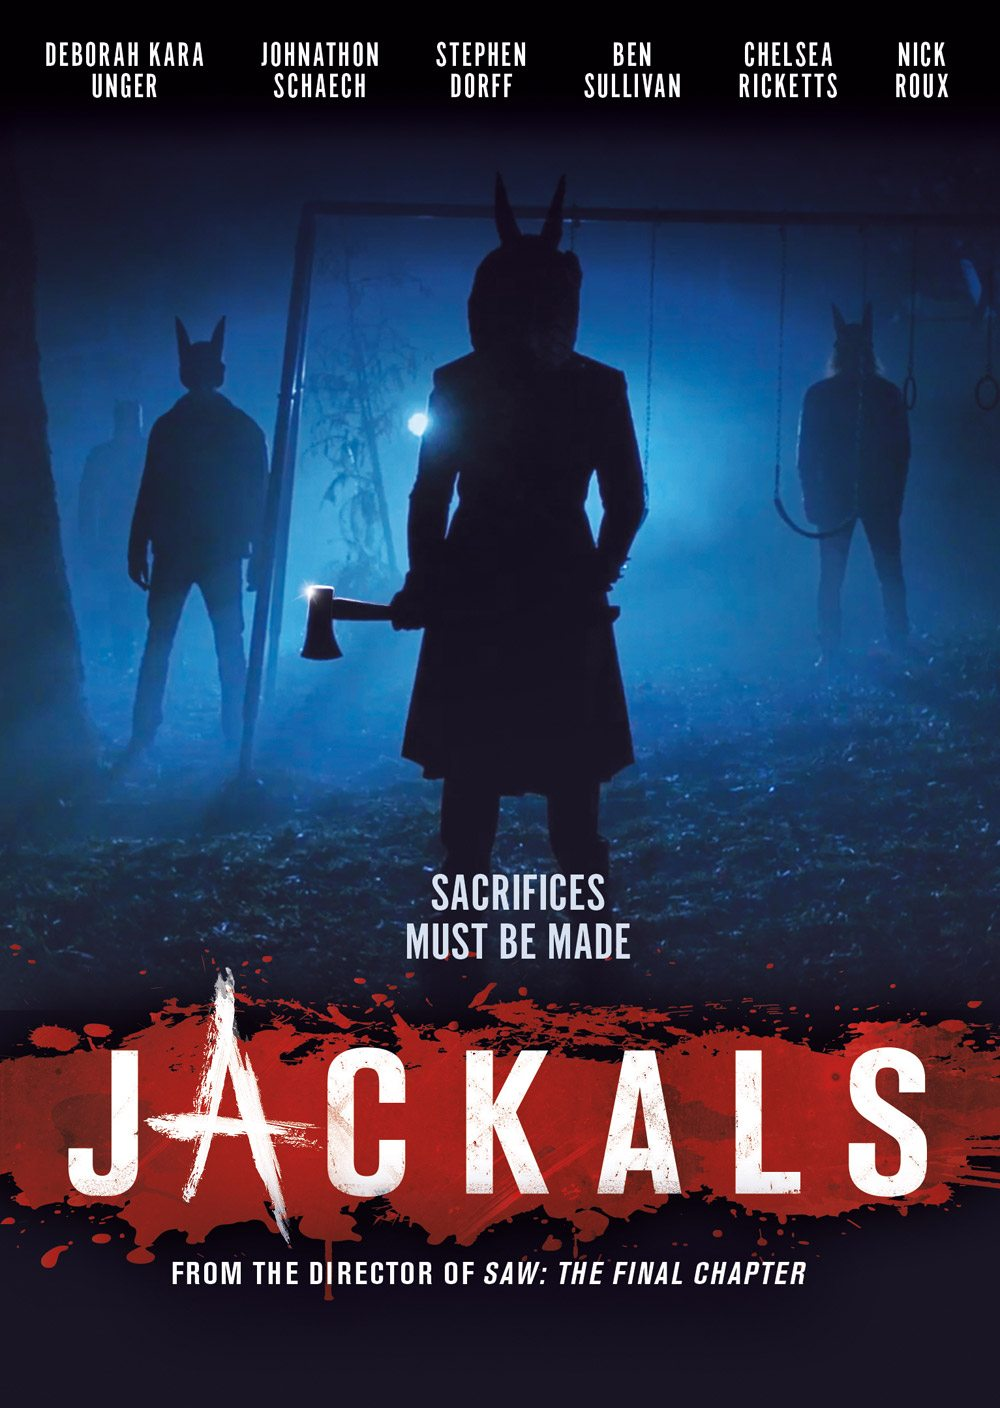 Jackals art - Family Means Everything in the Trailer for Jackals